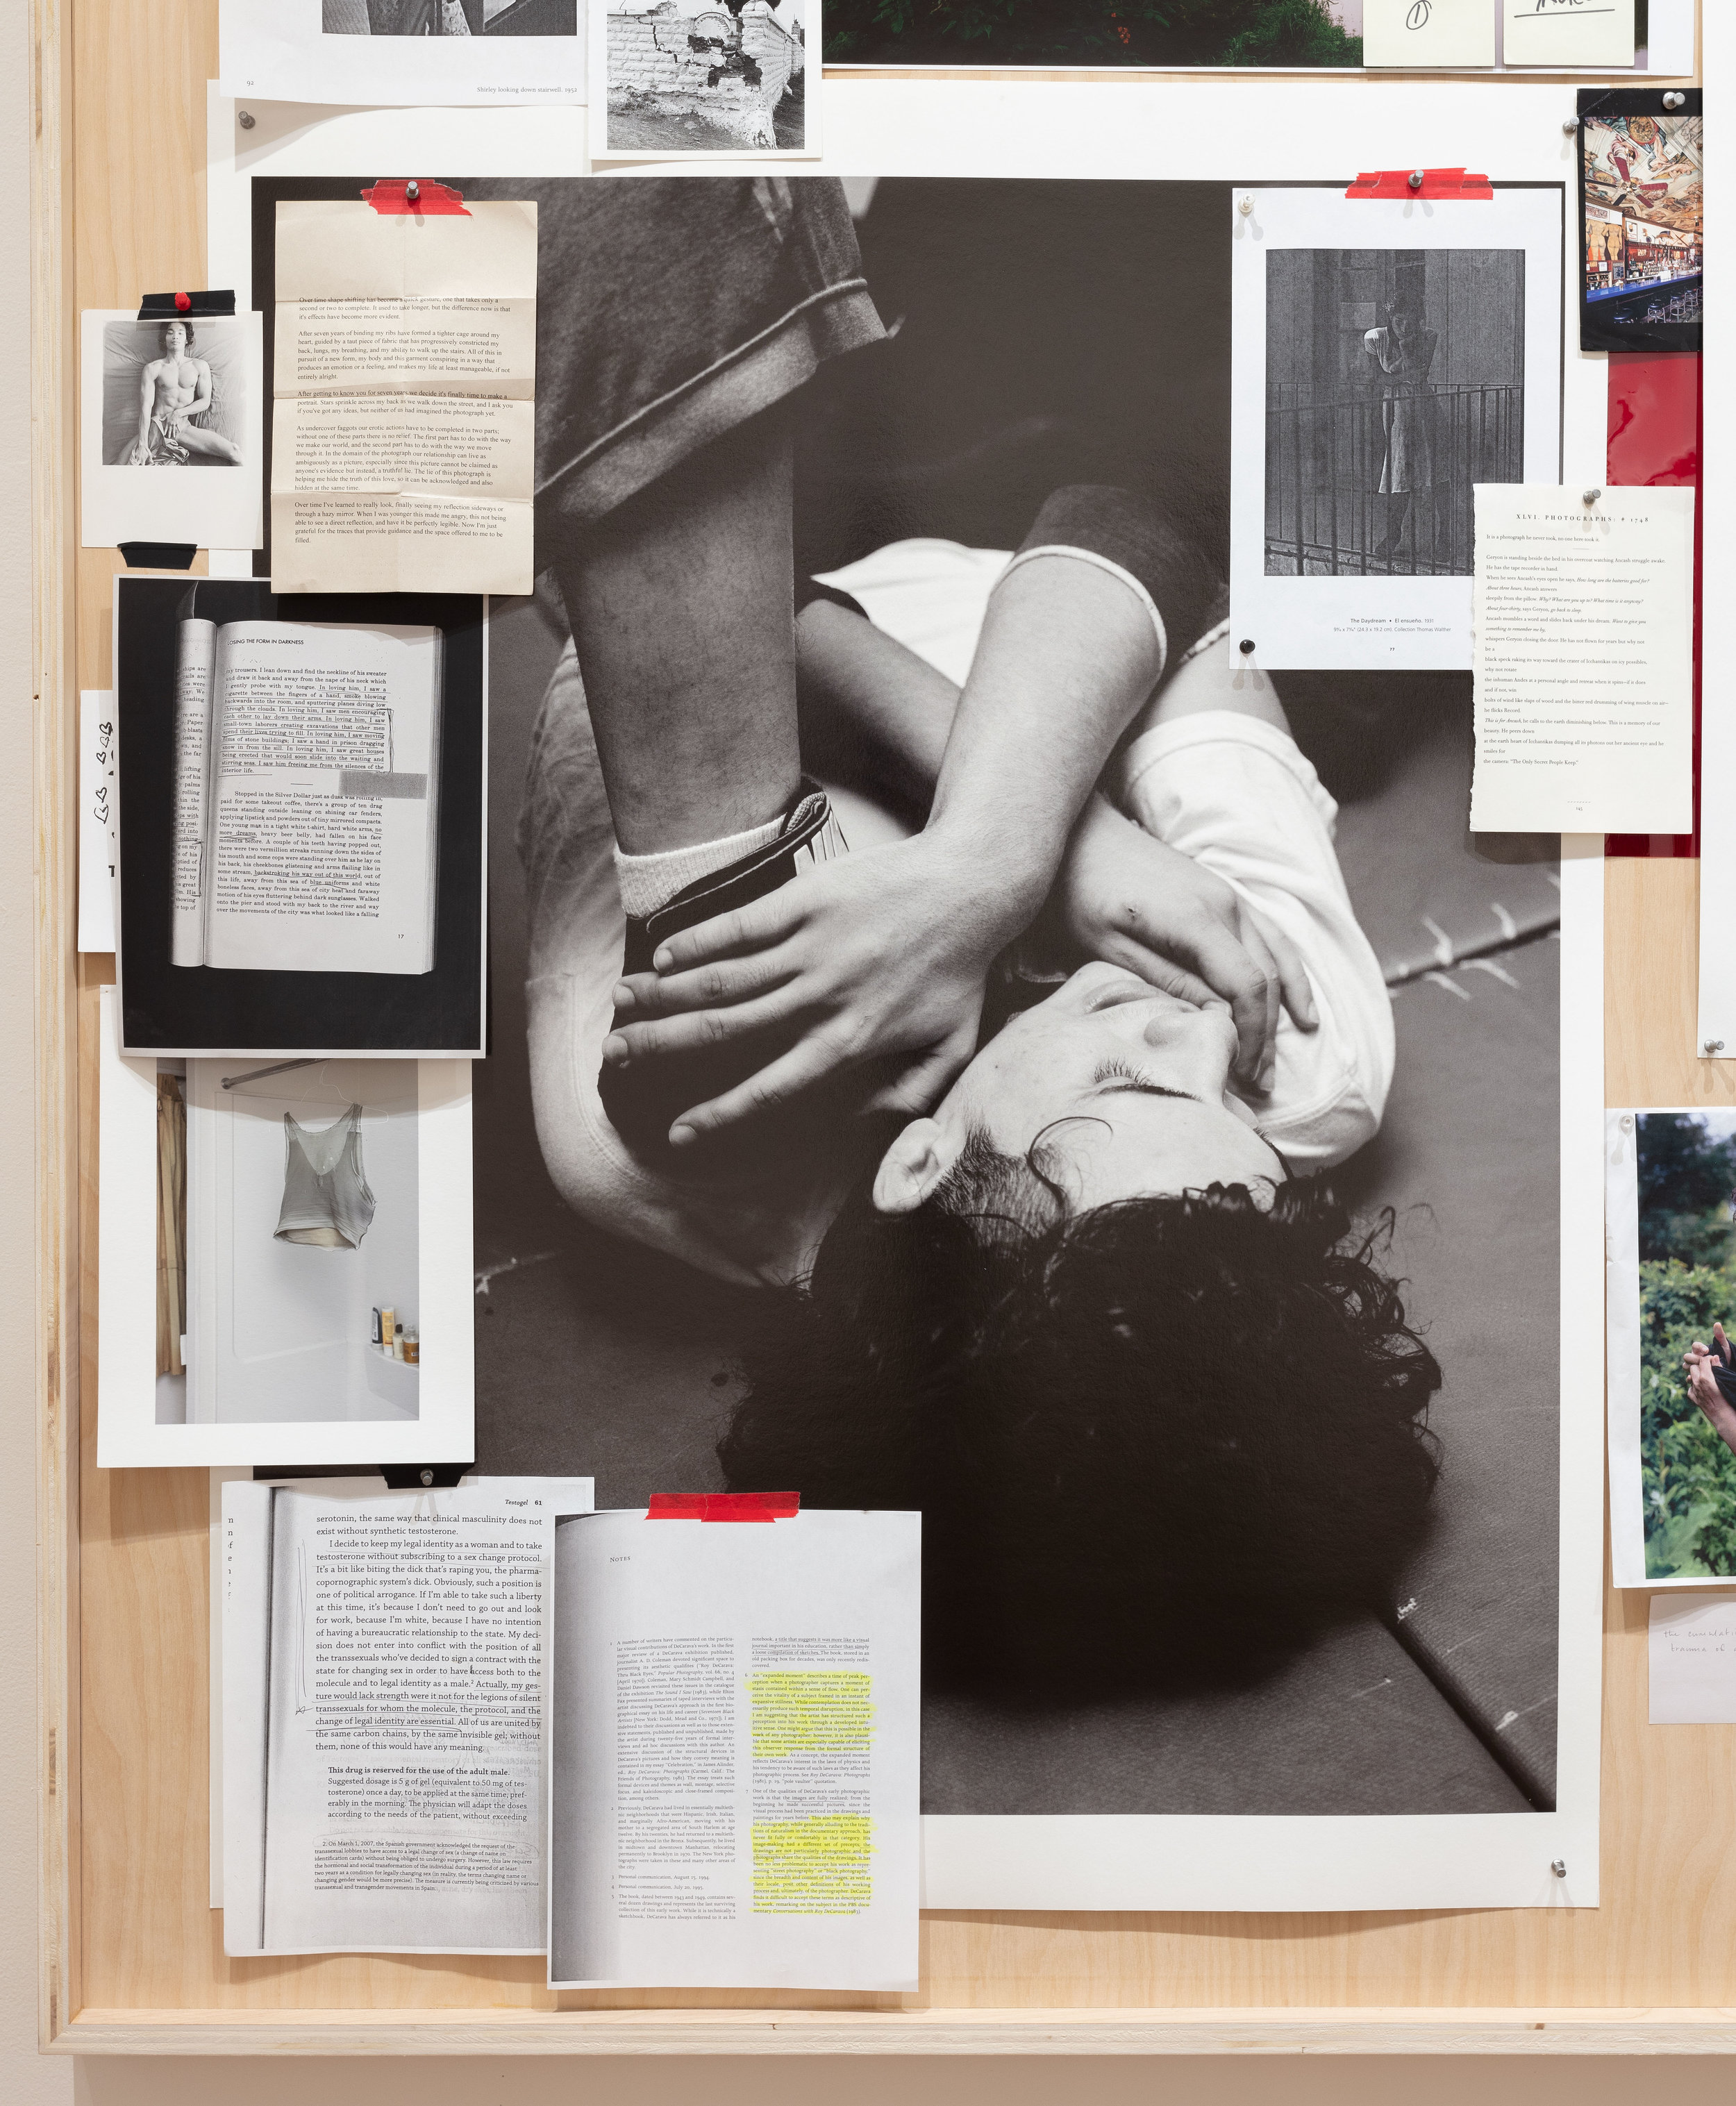 """ELLE PÉREZ. """"UNTITLED"""" (DETAIL), (2018). MIXED MEDIA COLLAGE. 73 1⁄2 × 96 1⁄2 × 3 INCHES. IMAGE COURTESY OF THE ARTIST, 47 CANAL, NEW YORK, AND MOMA PS1, NEW YORK. PHOTO: JOERG LOHSE"""